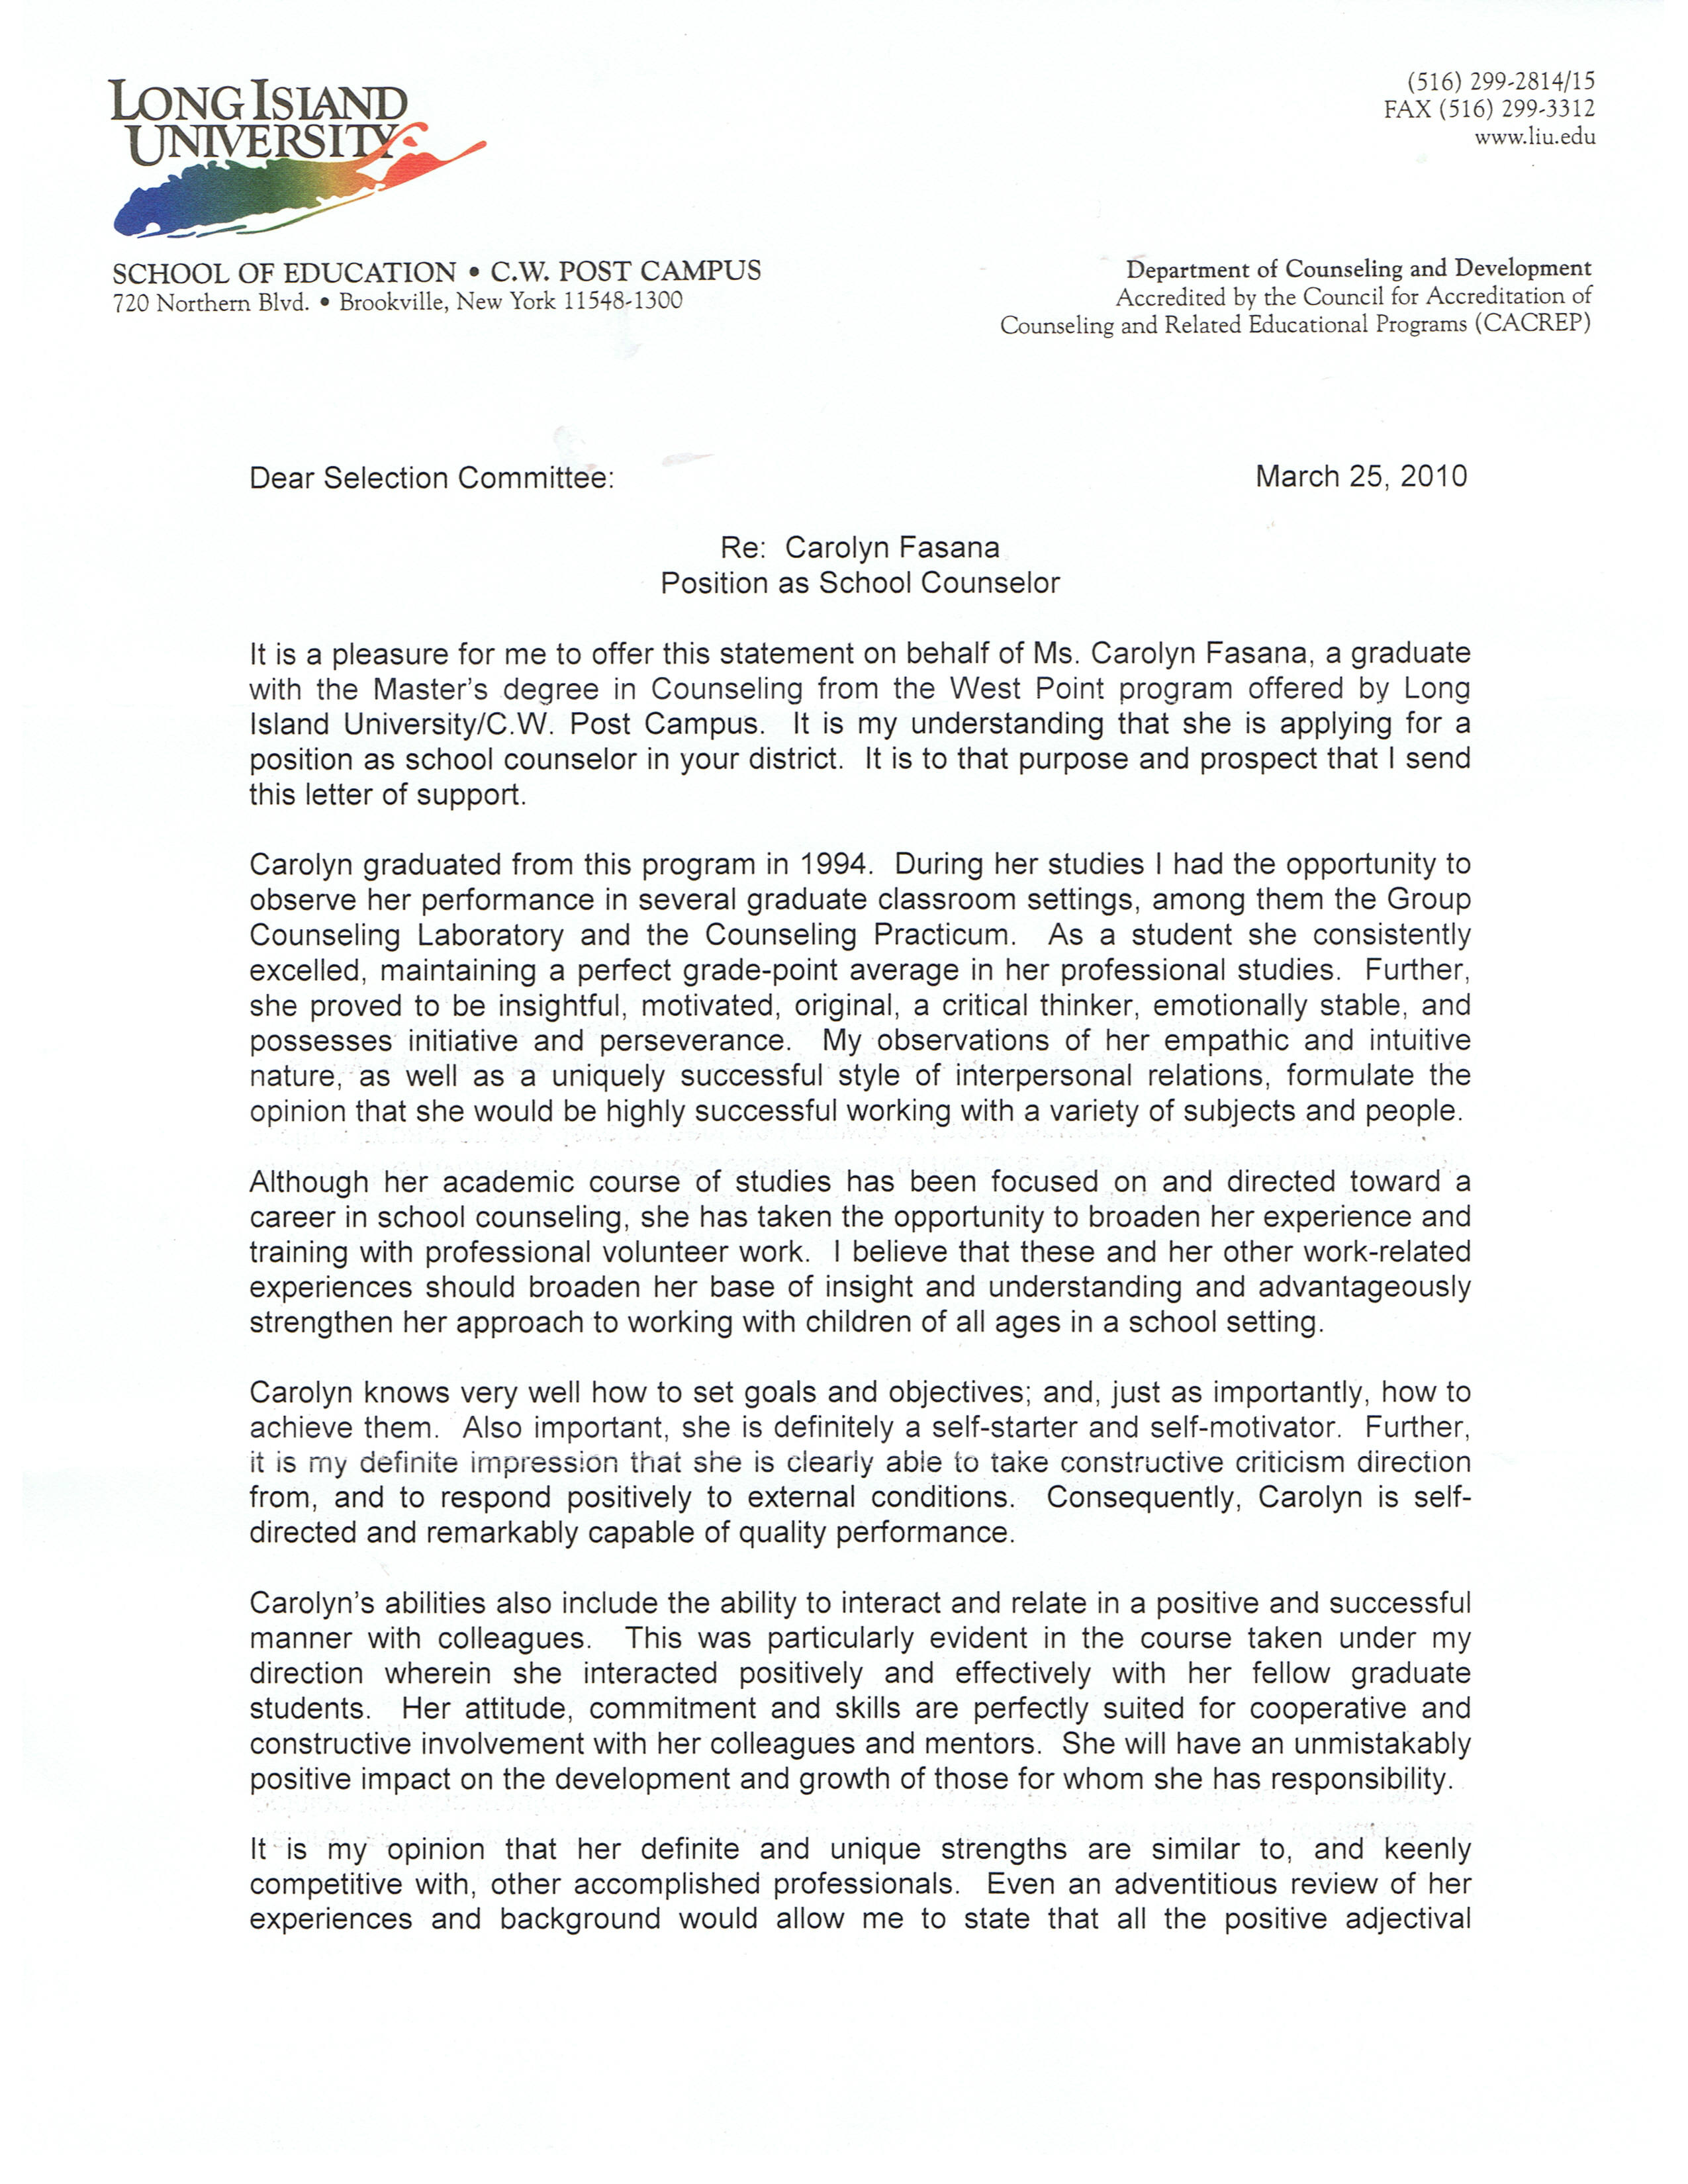 positive letter of recommendation example